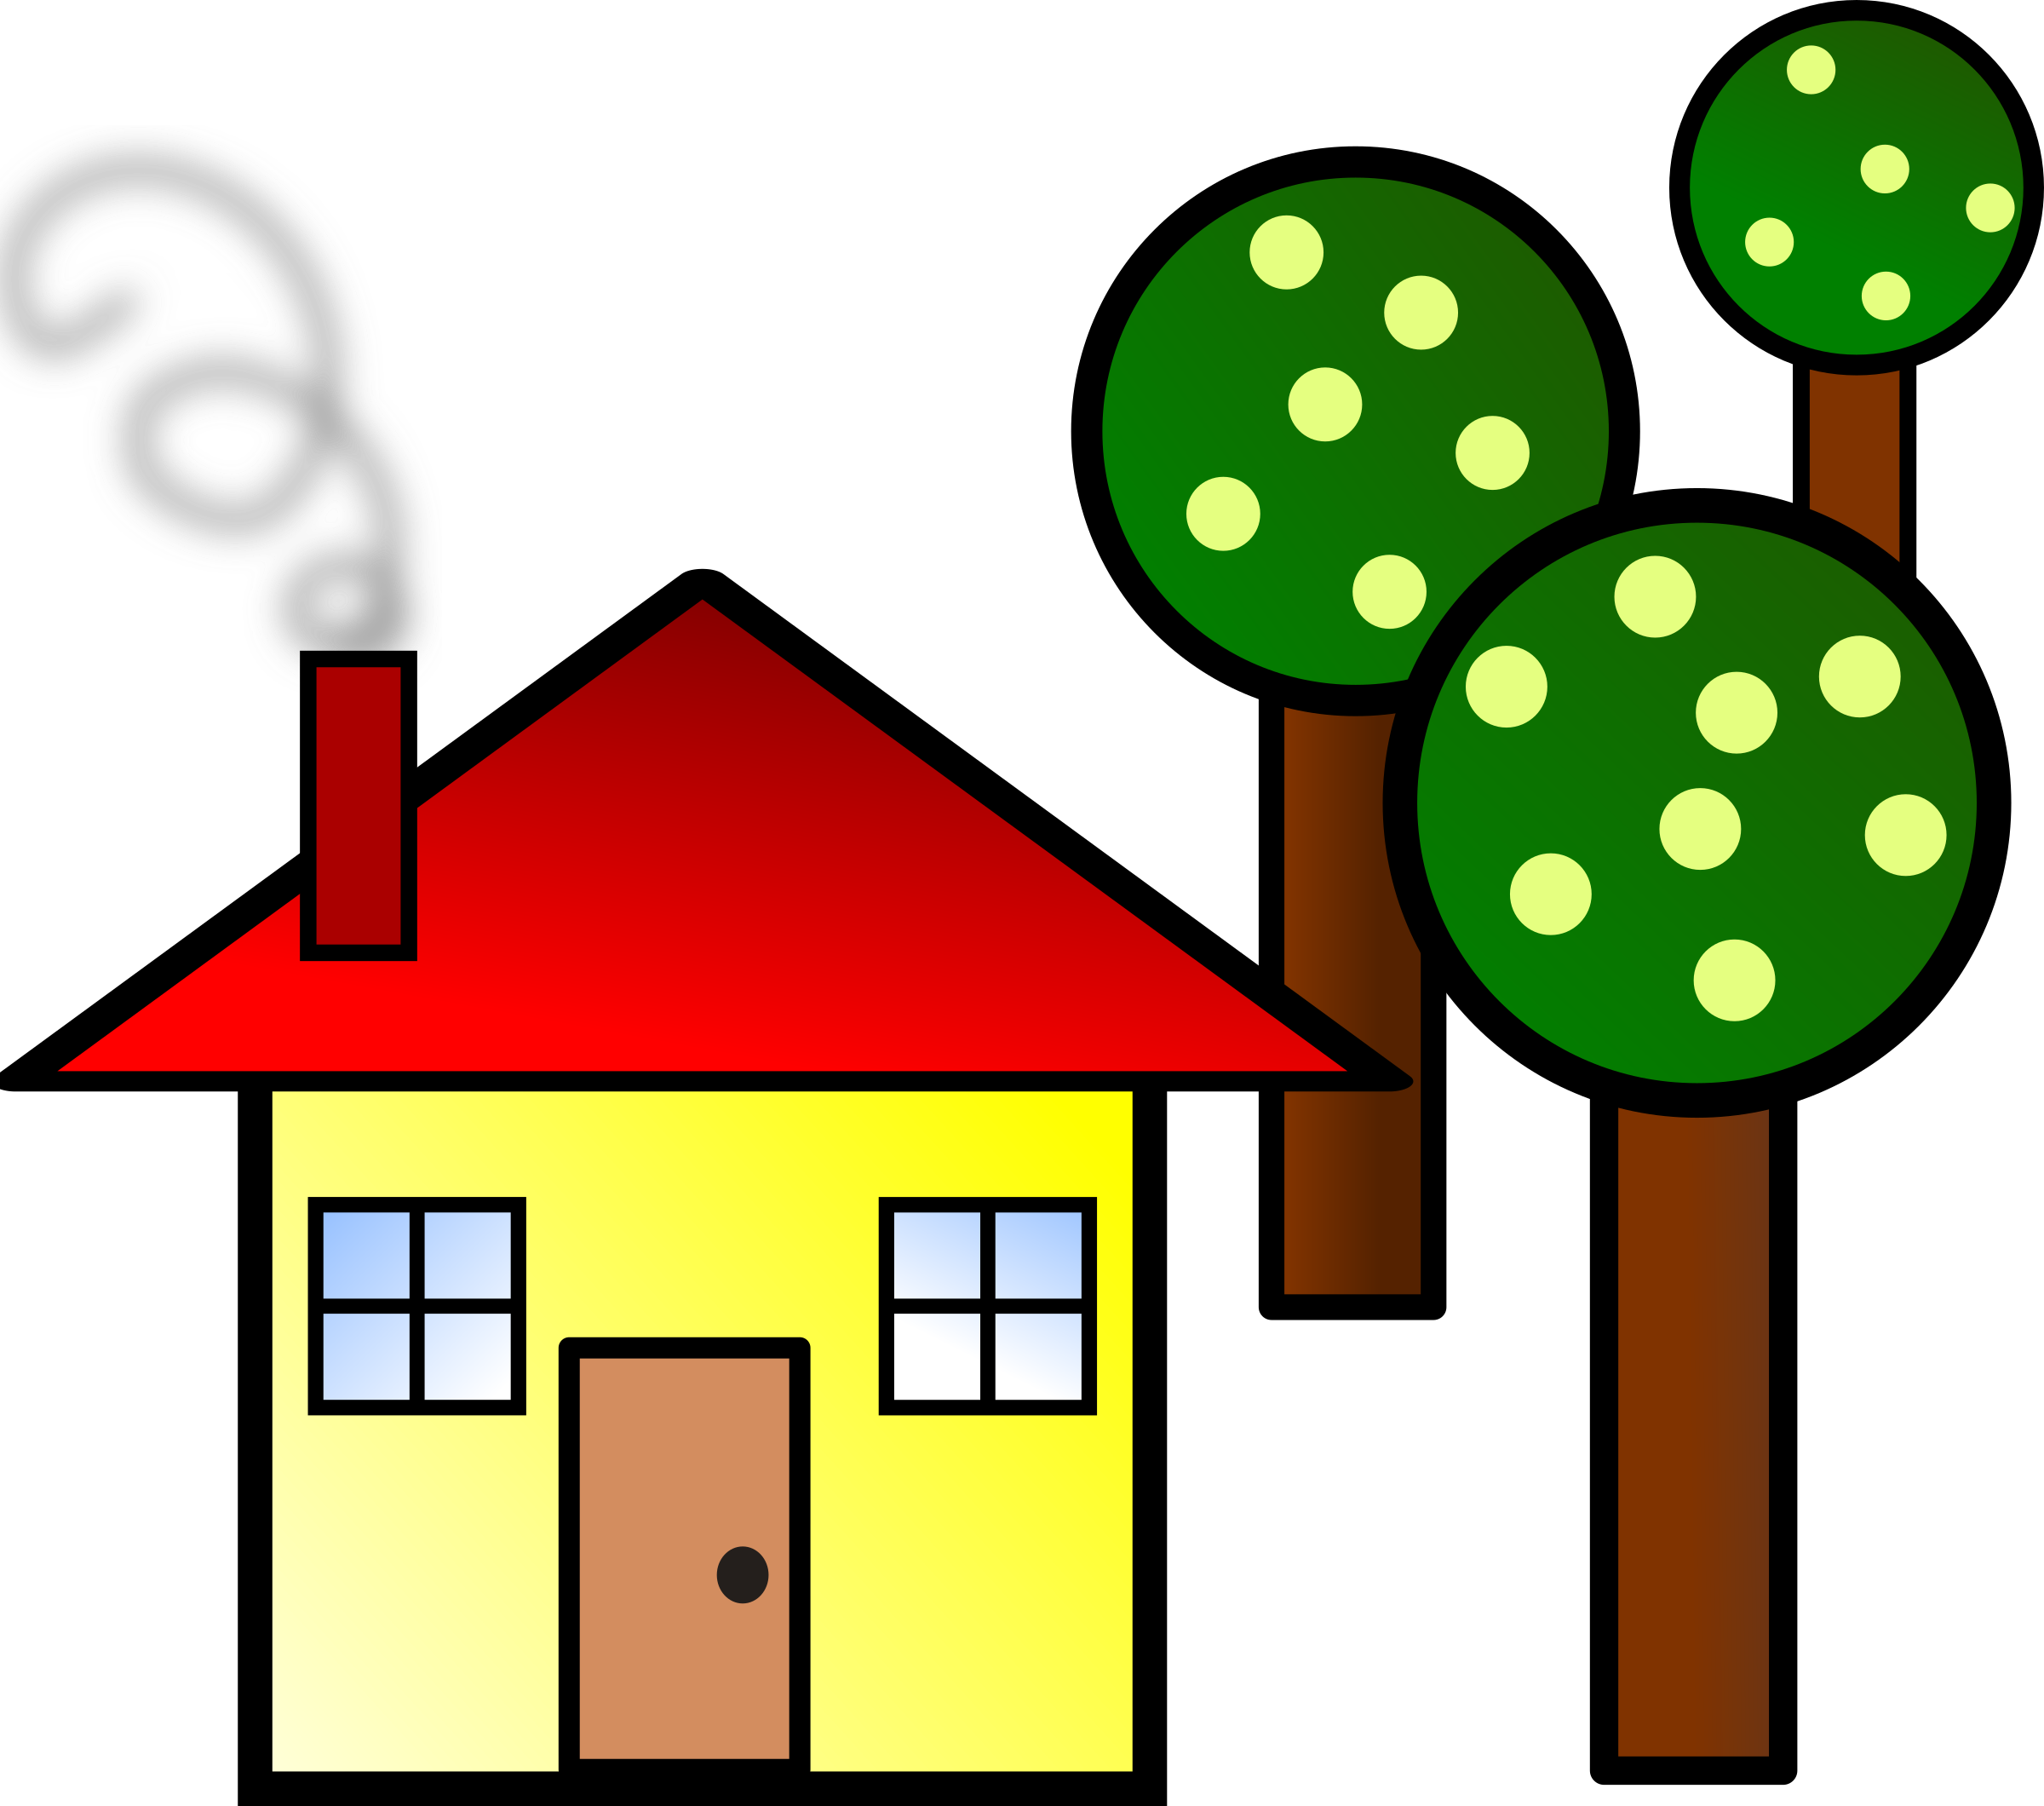 House with trees by. Quilt clipart household